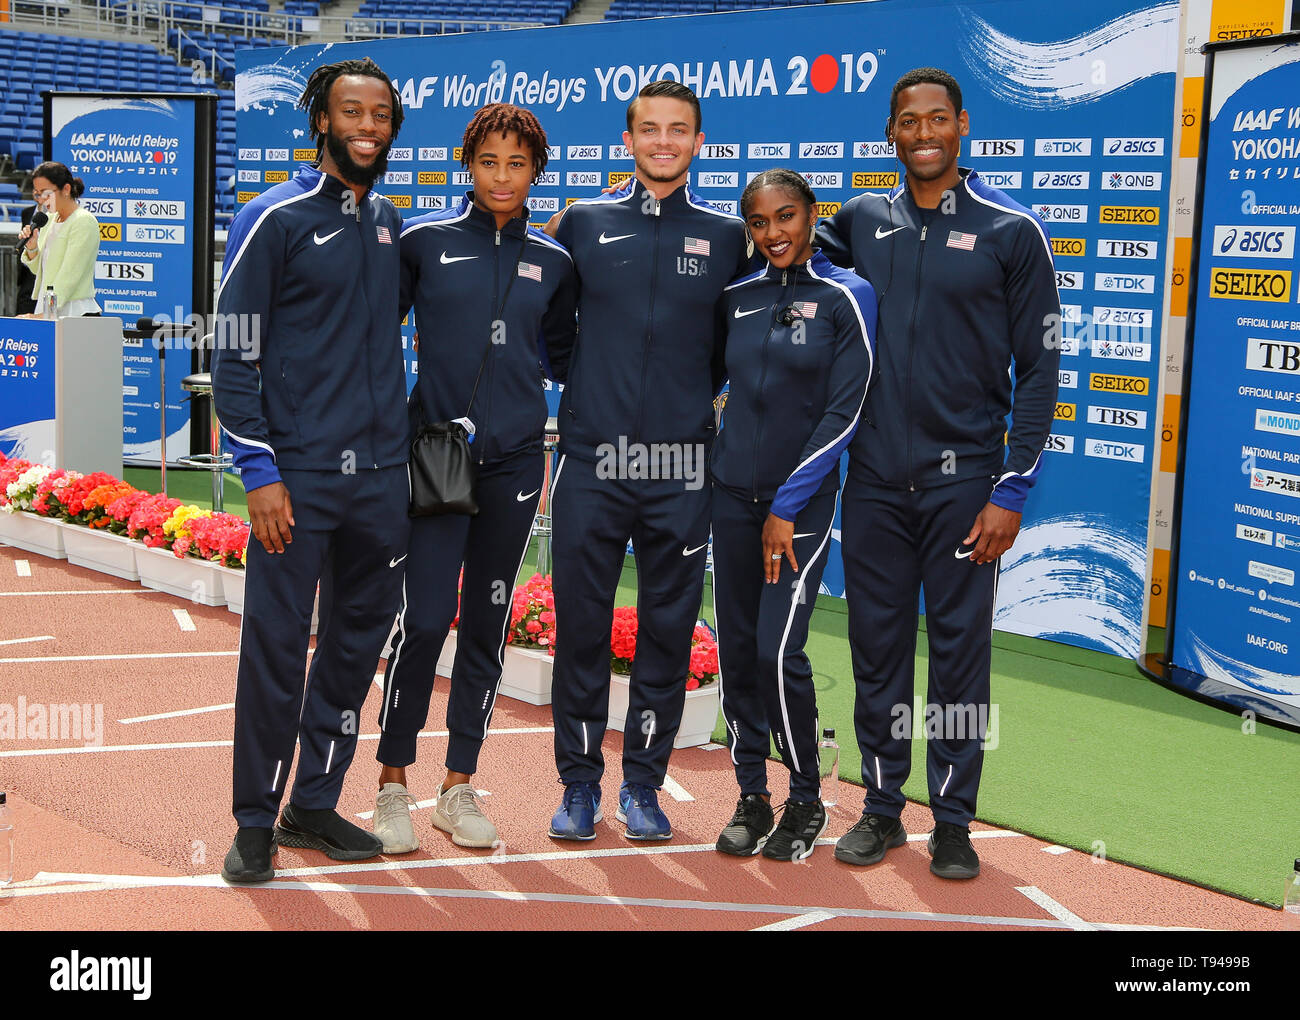 YOKOHAMA, JAPAN - MAY 10: USA's shuttle hurdles relay team (Devon Allen, Christina Clemons, Freddie Crittenden, Ryan Fontenot, Queen Harrison, Sharika Nelvis) during the official press conference of the 2019 IAAF World Relay Championships at the Nissan Stadium on May 10, 2019 in Yokohama, Japan. (Photo by Roger Sedres for the IAAF) Stock Photo